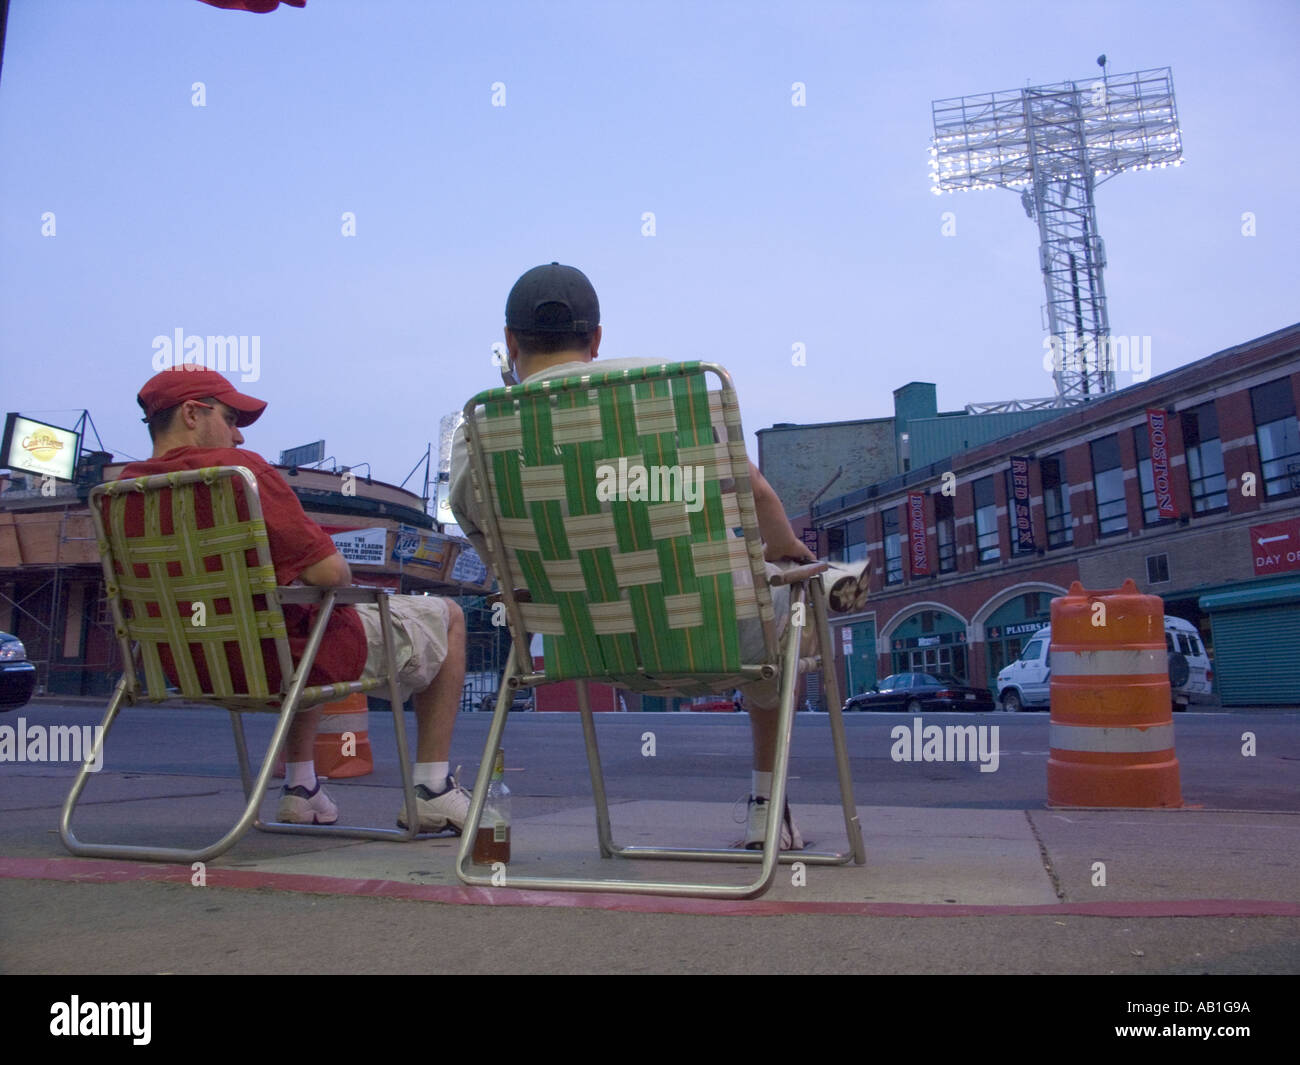 Fans outside Fenway Park Baseball stadium on a game day - Stock Image